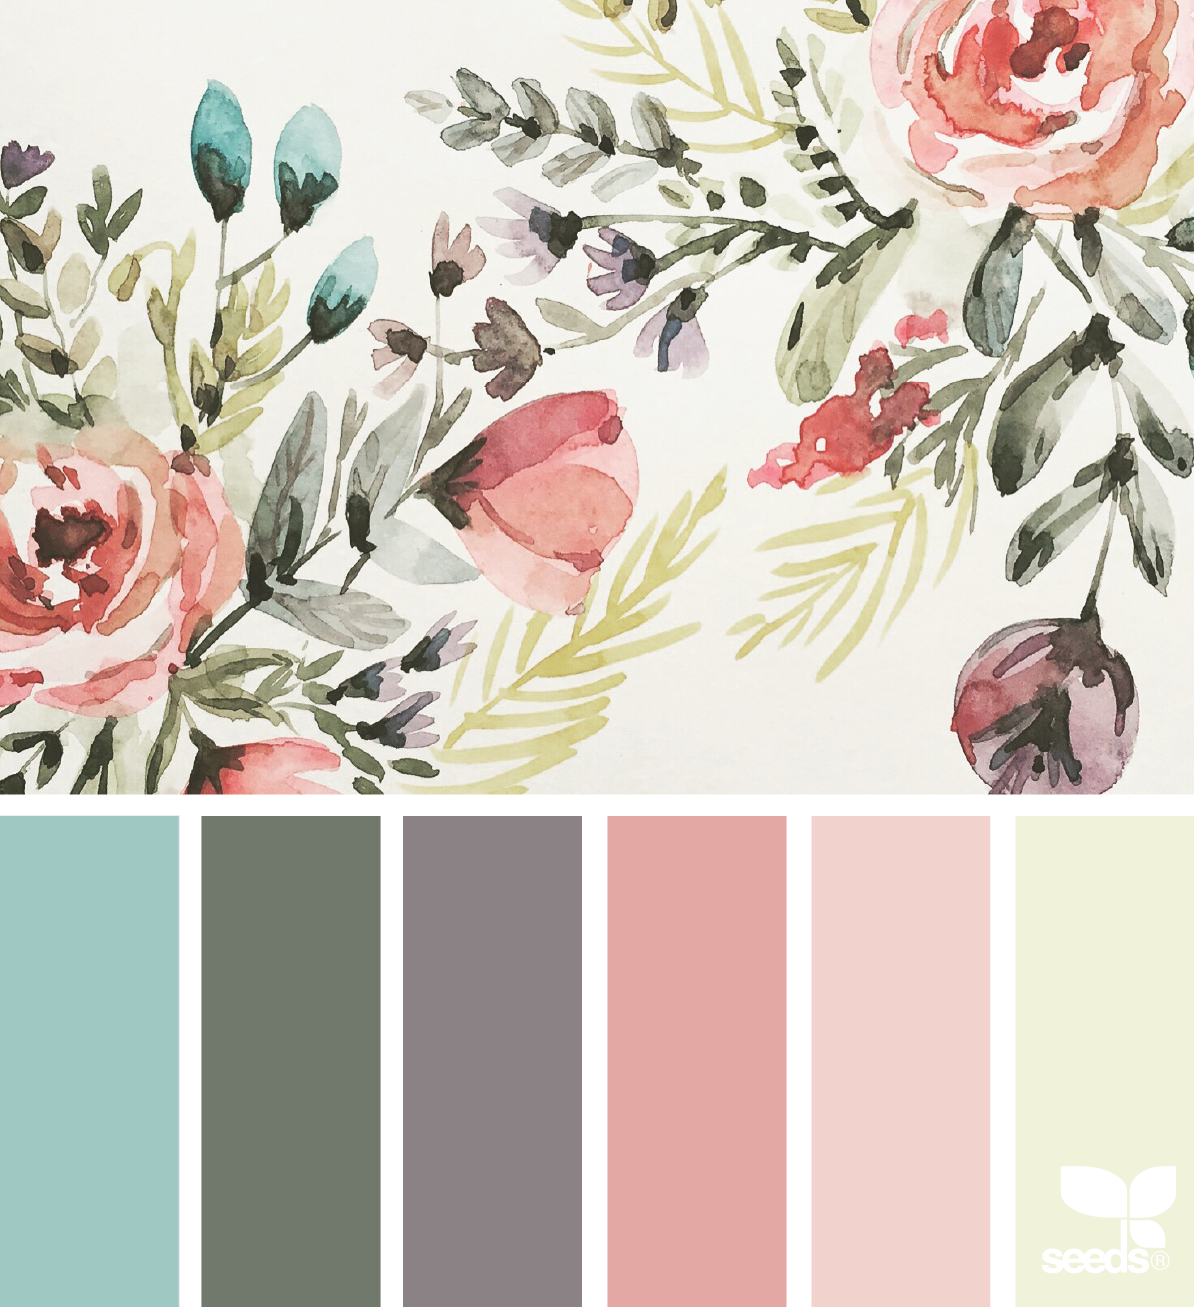 Illustrated Hues - https://www.design-seeds.com/spring/illustrated-hues